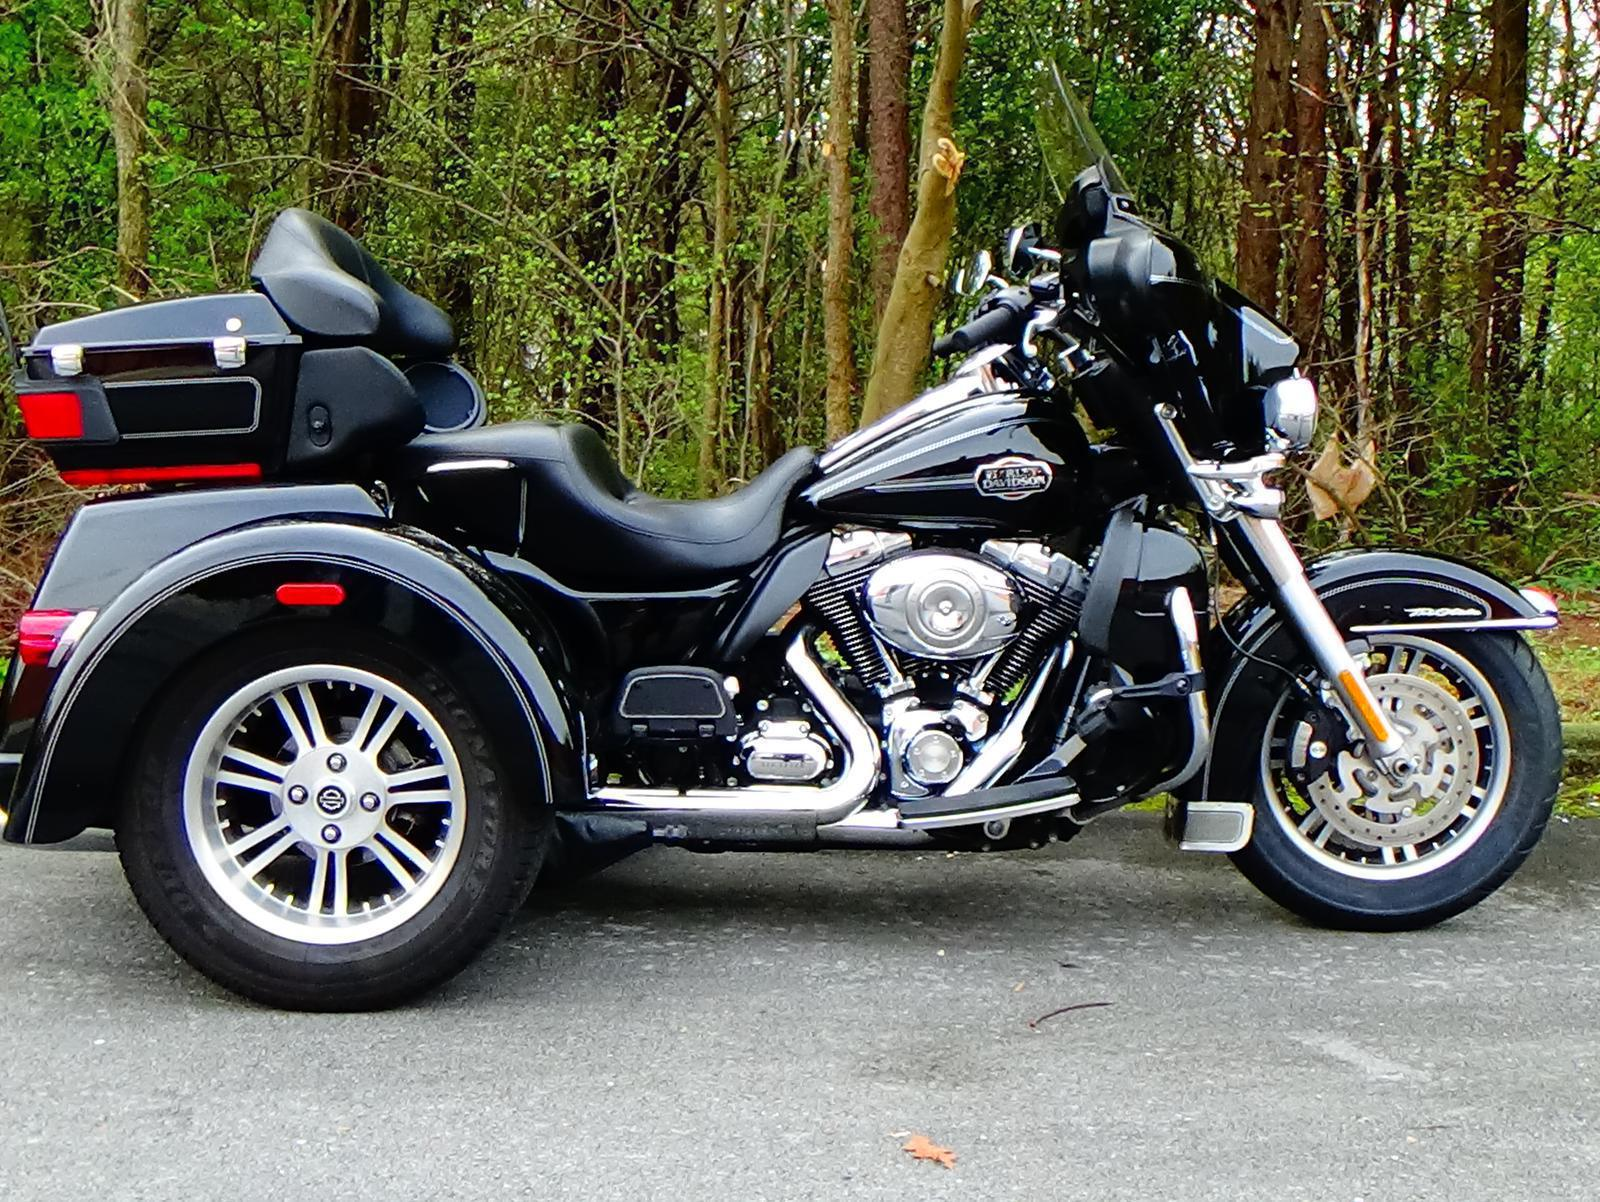 tags page 1 usa new and used flhtcutg triglide motorcycles prices and values. Black Bedroom Furniture Sets. Home Design Ideas